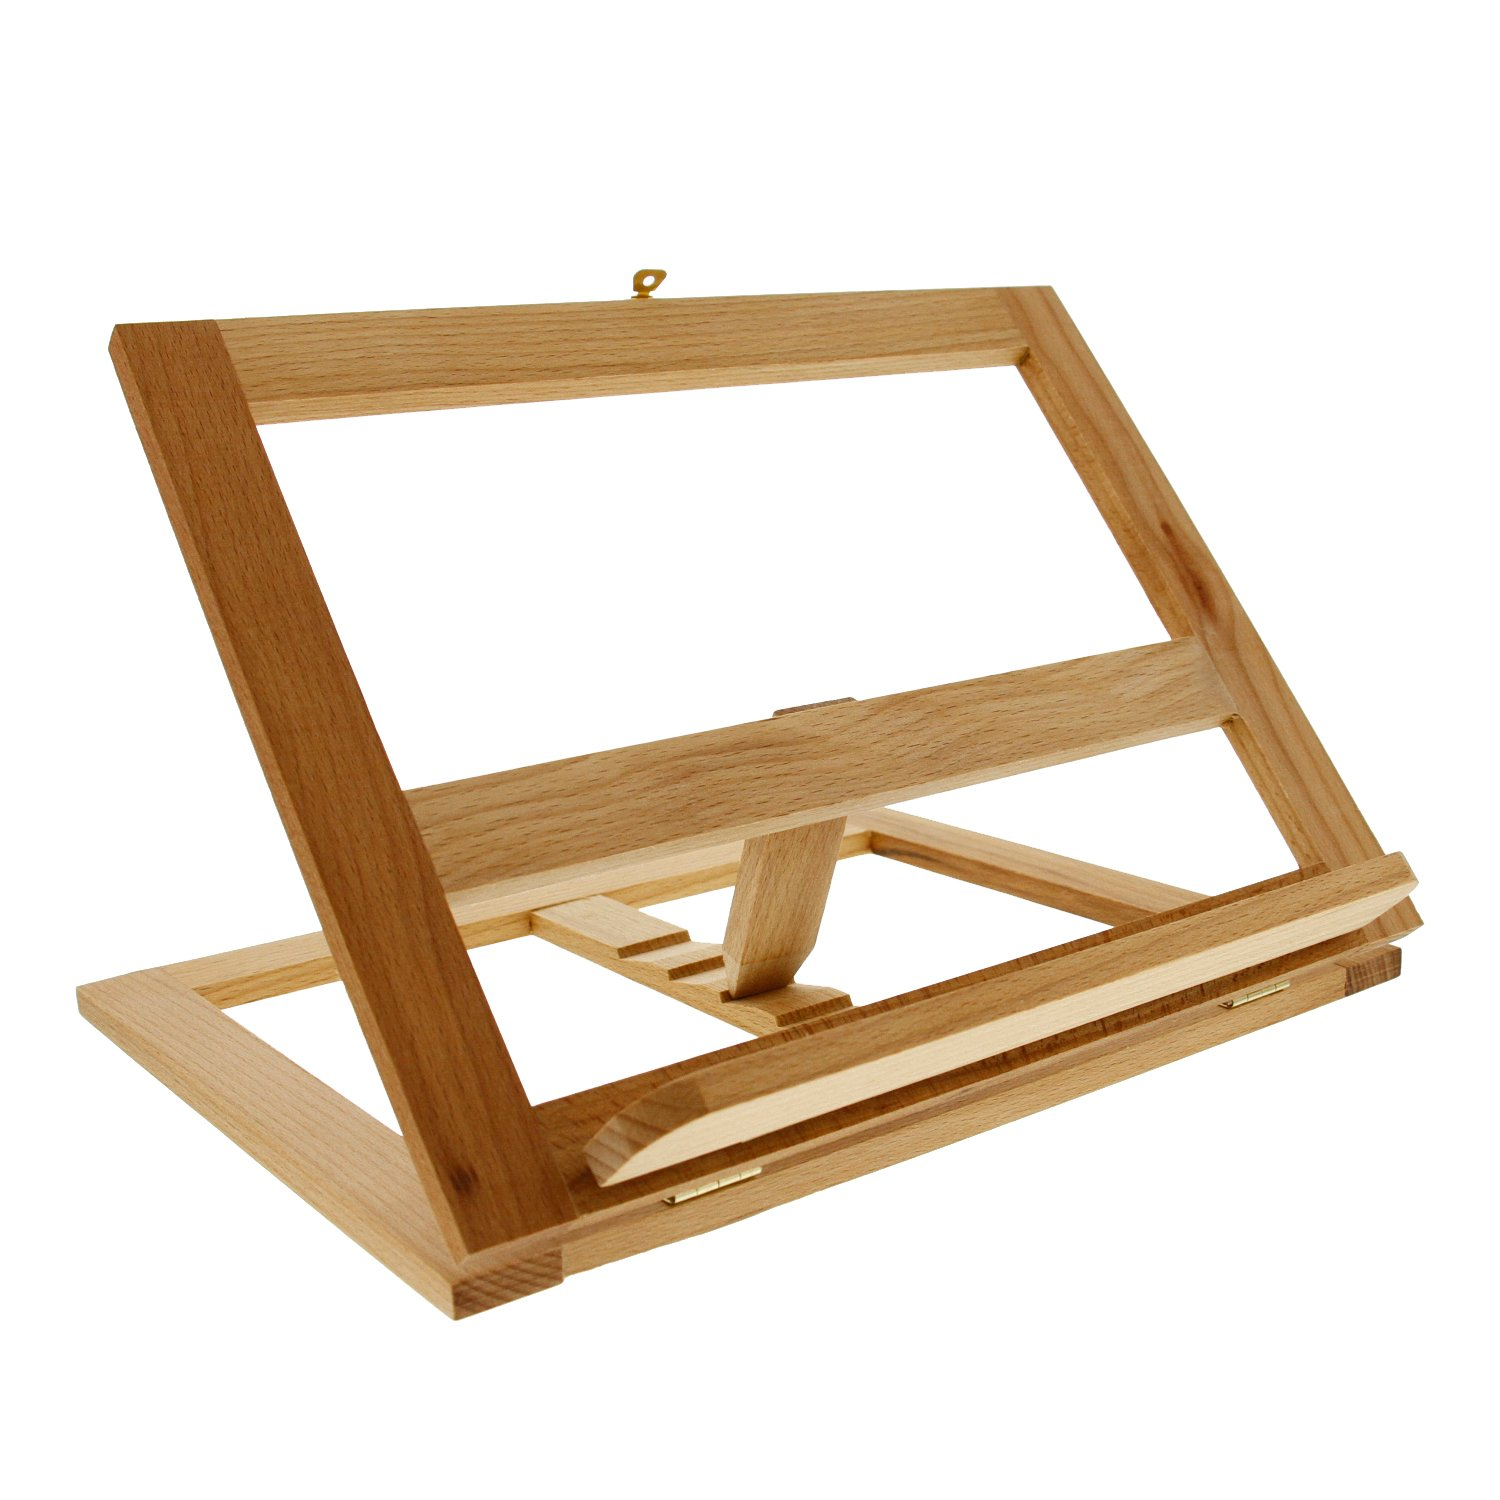 U.S. Art Supply Large Wooden Bookrack Easel and Cookbook Holder by US Art Supply